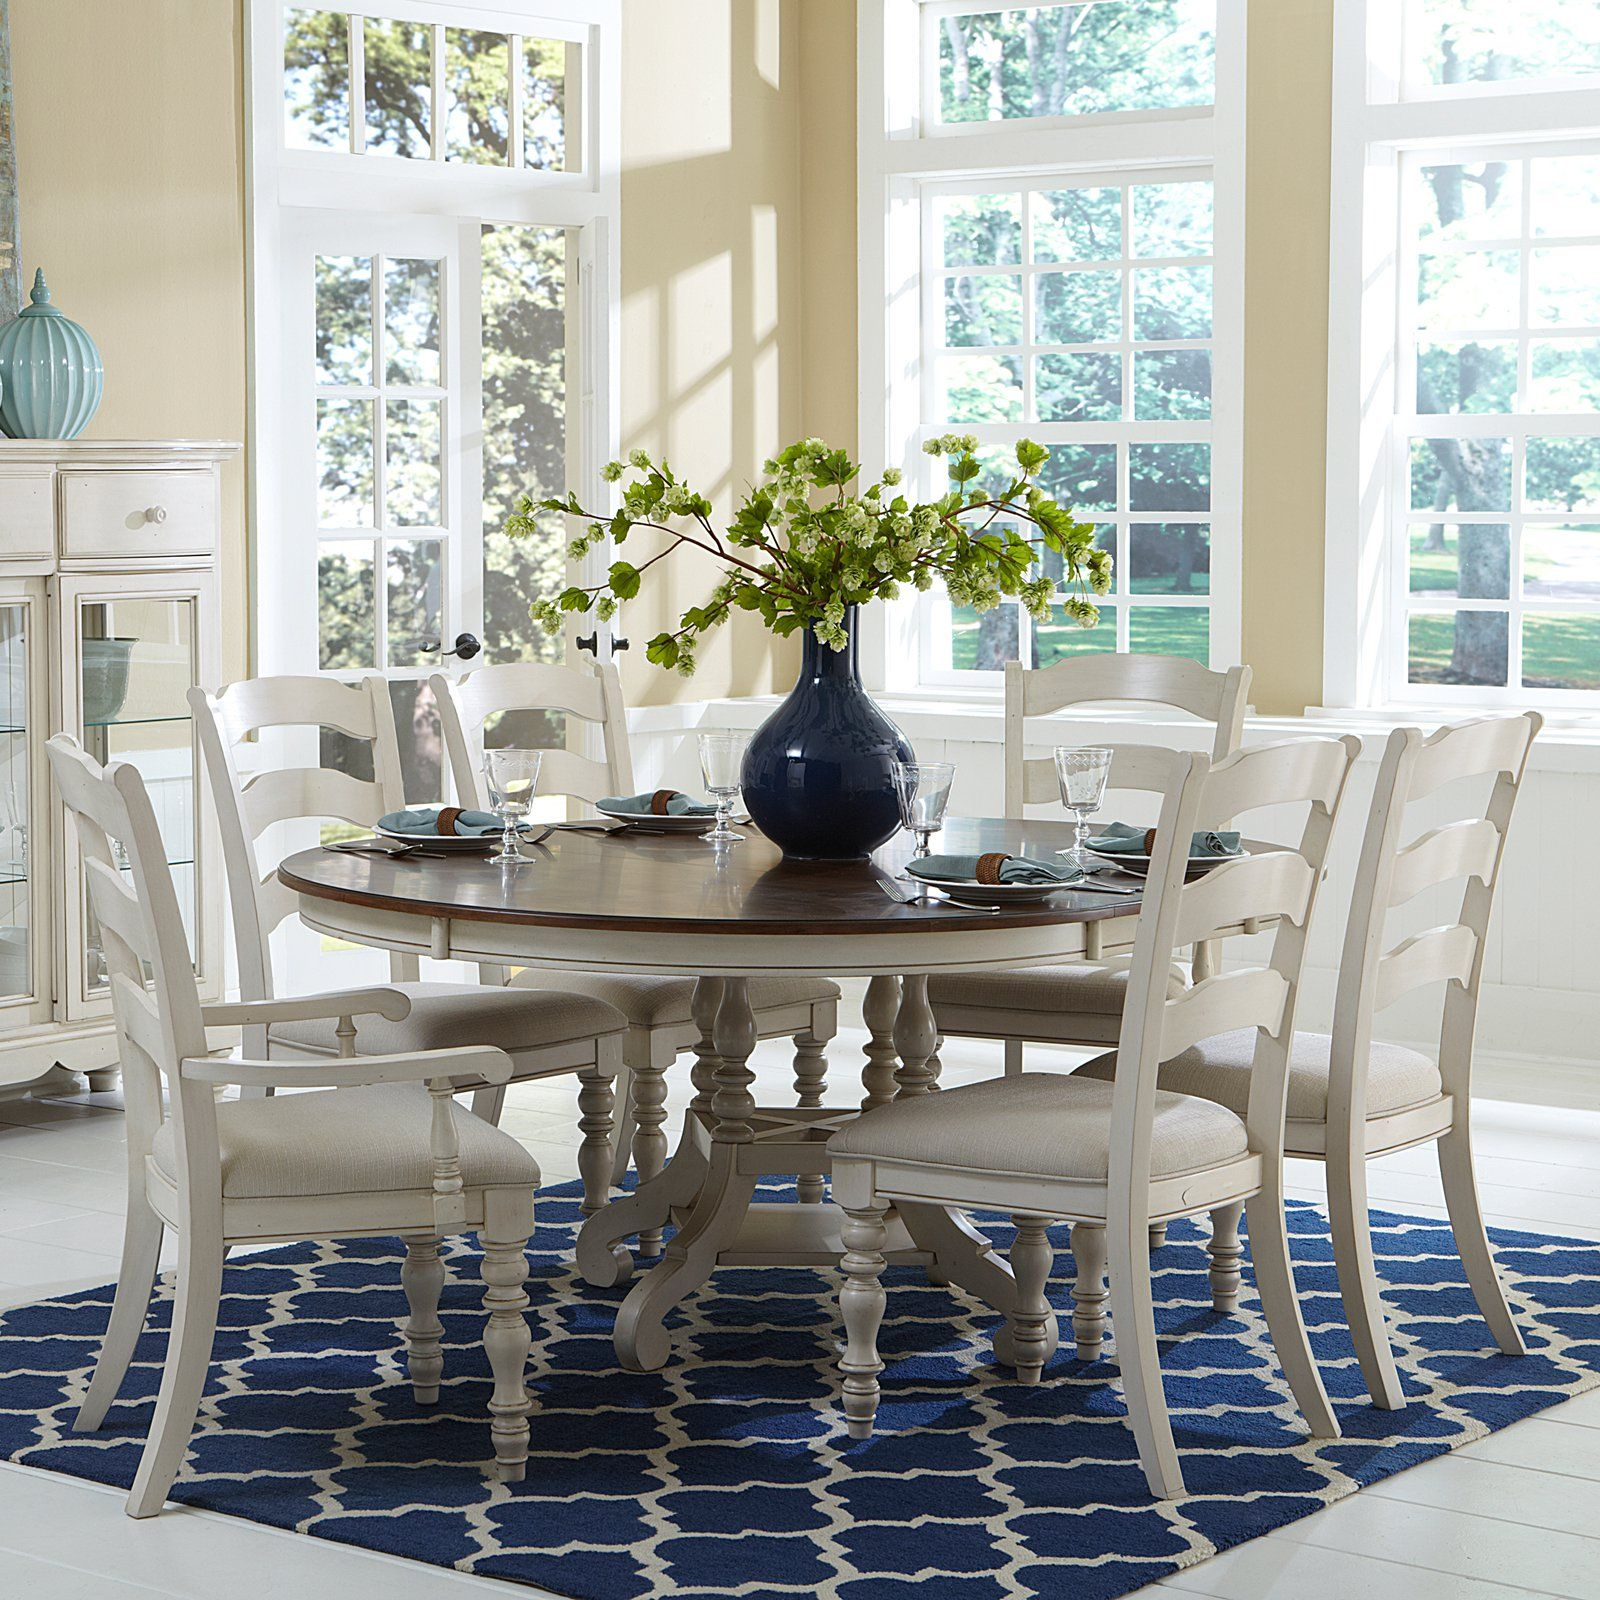 Hilale Pine Island 7 Piece Round Dining Set With Ladder Back Chairs 2193 99 Hayneedle